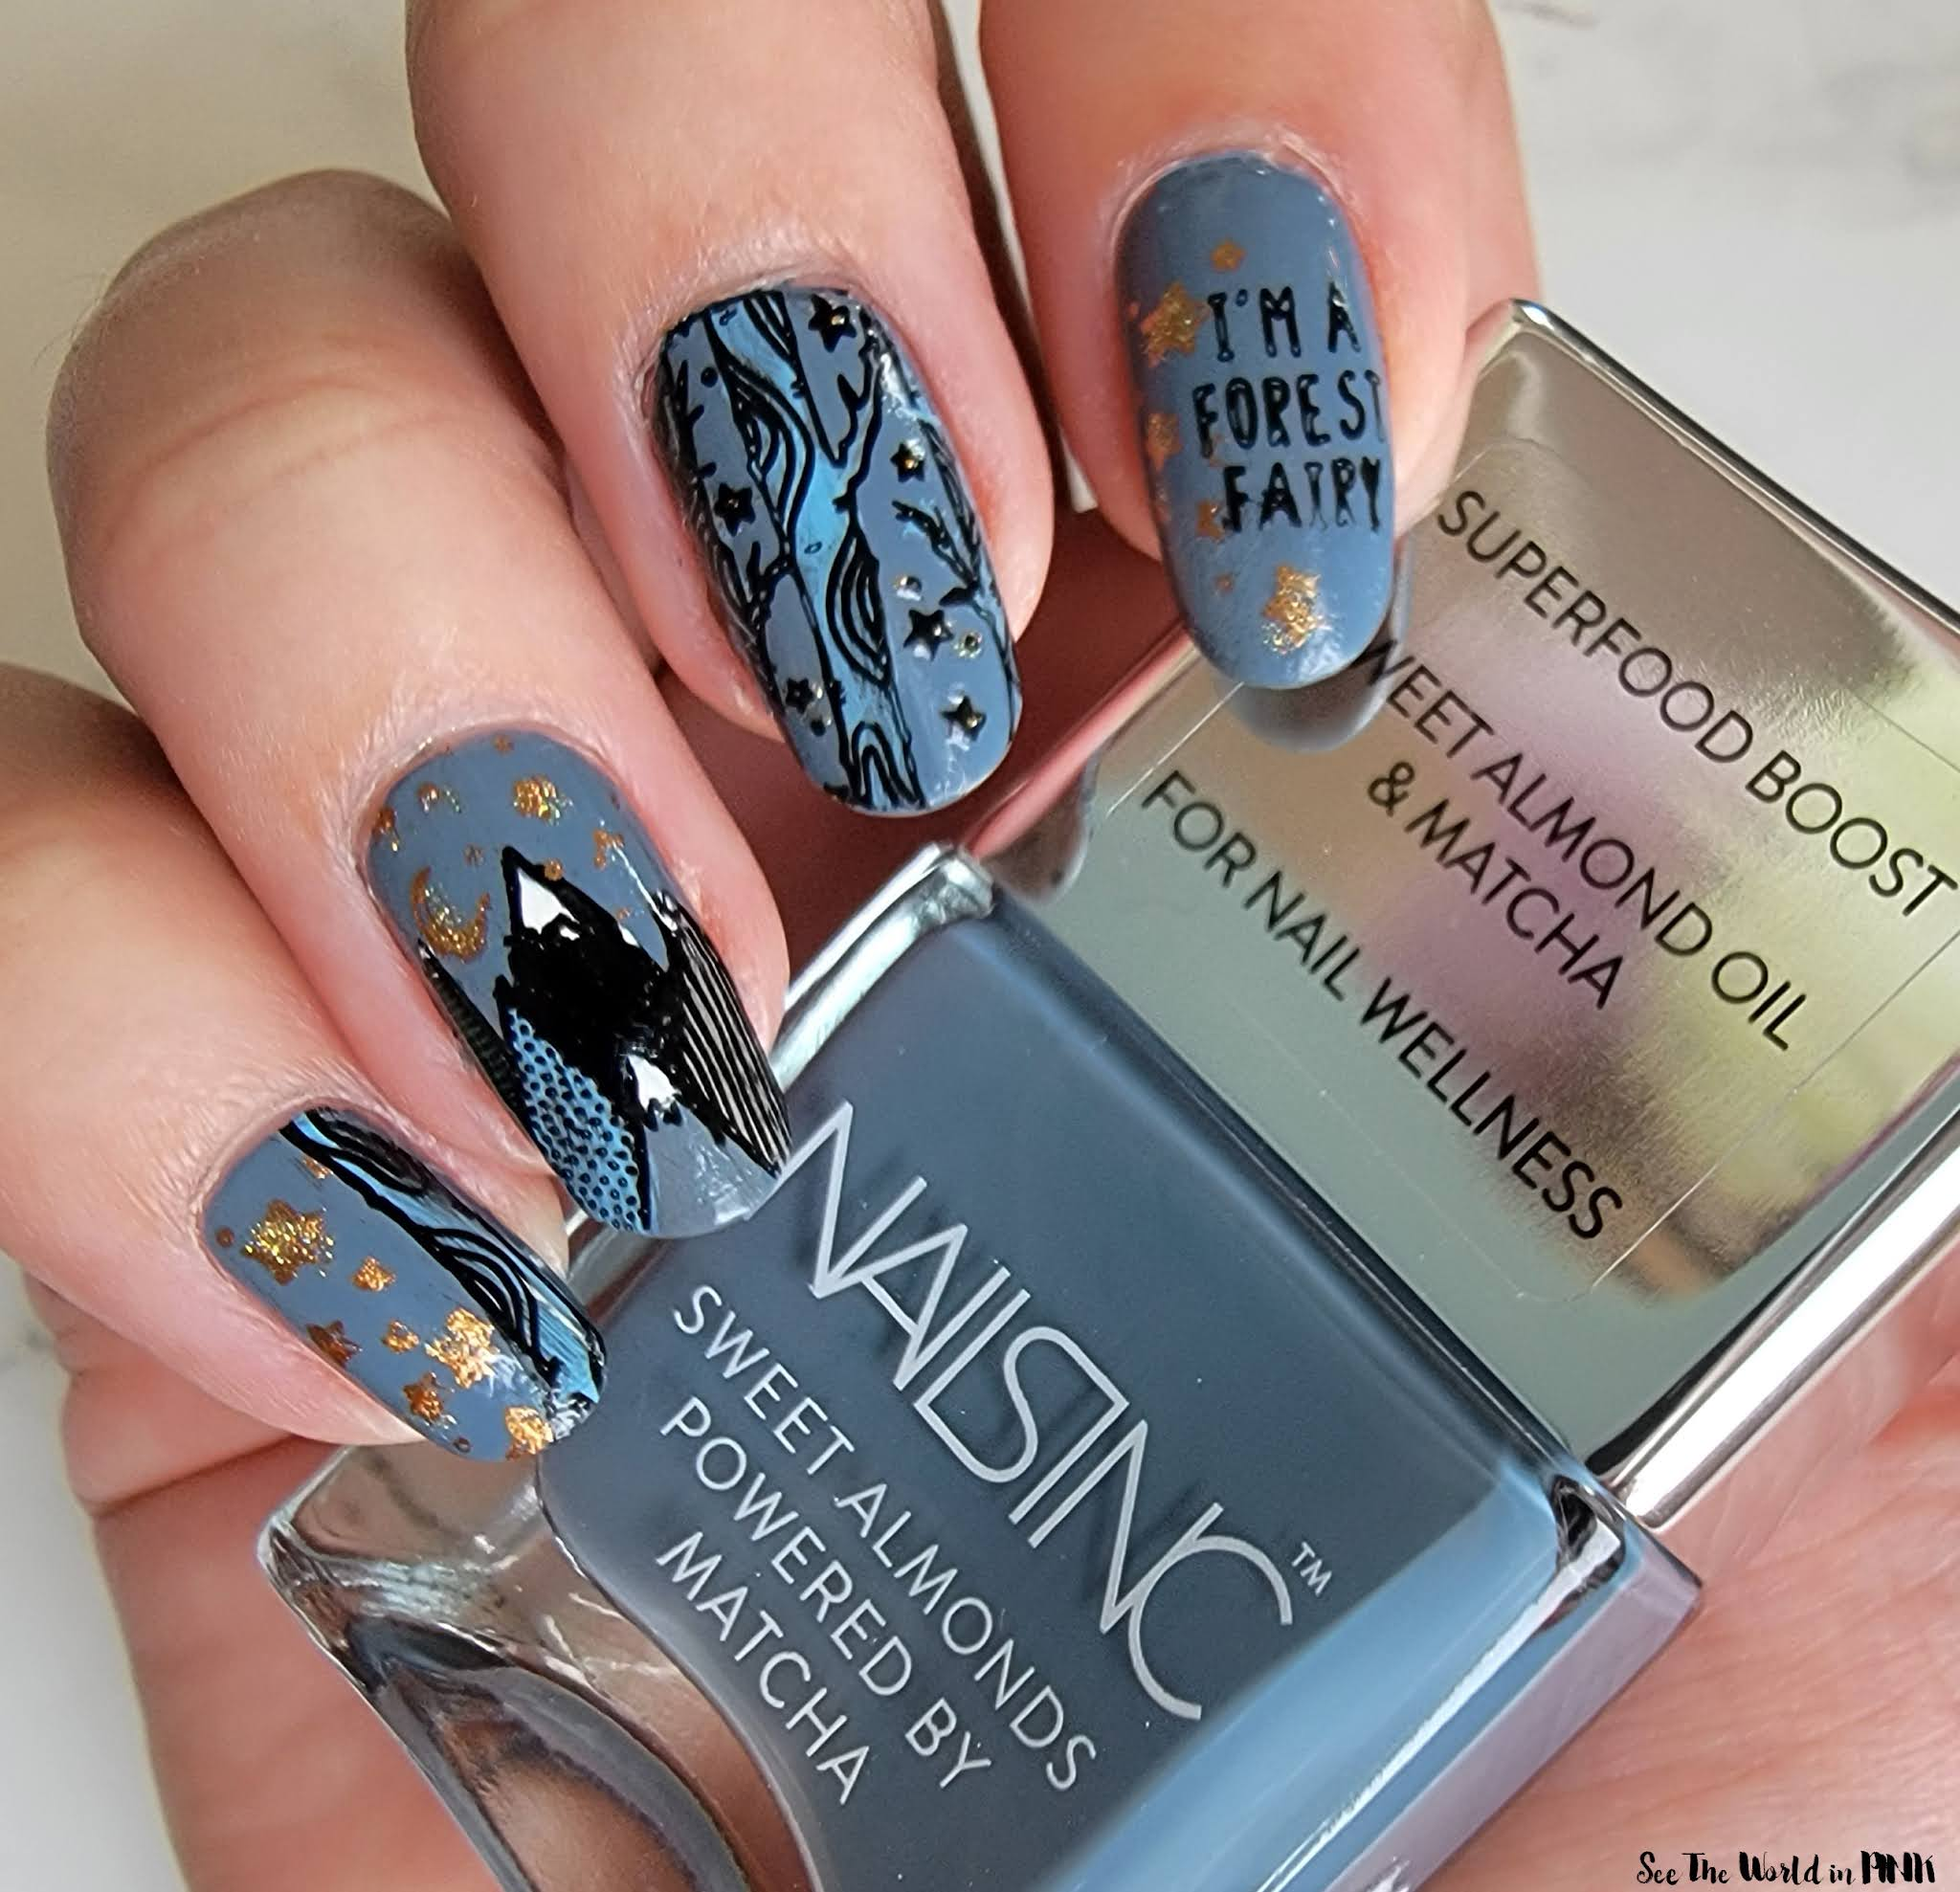 Manicure Monday - Stamped Fall Mountain Nails